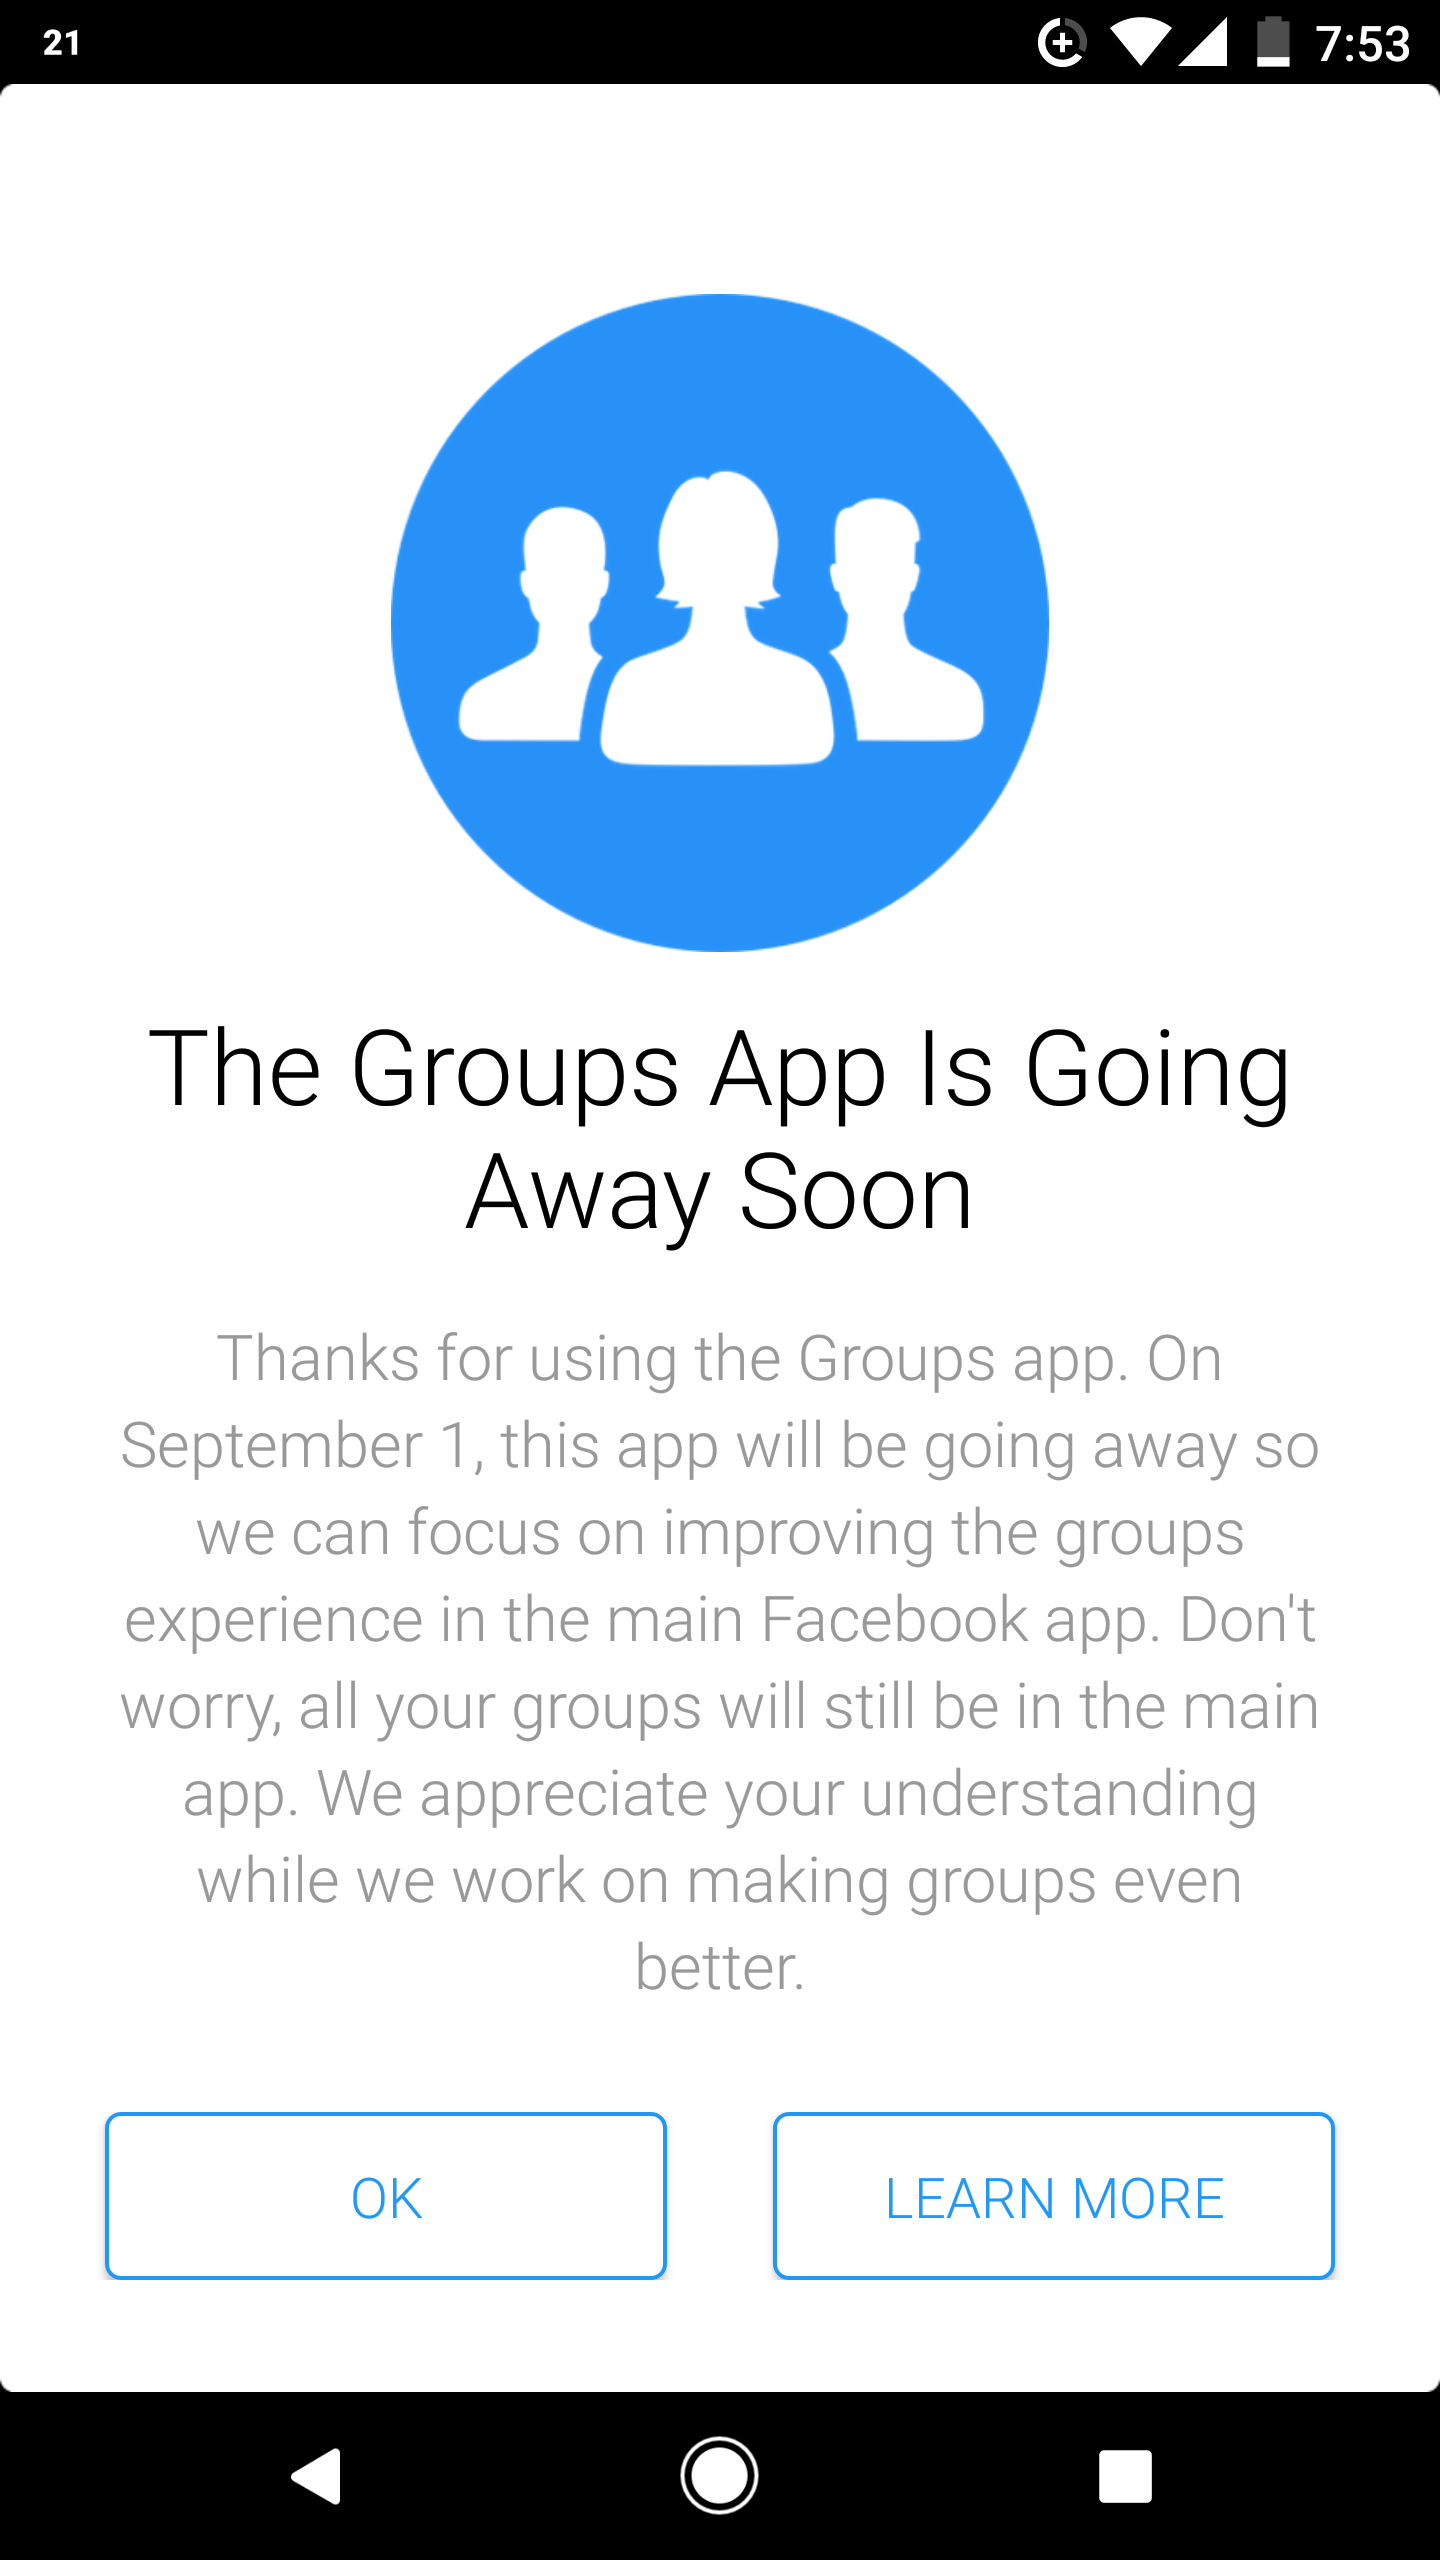 Facebook Says Goodbye To The Groups App On September 1